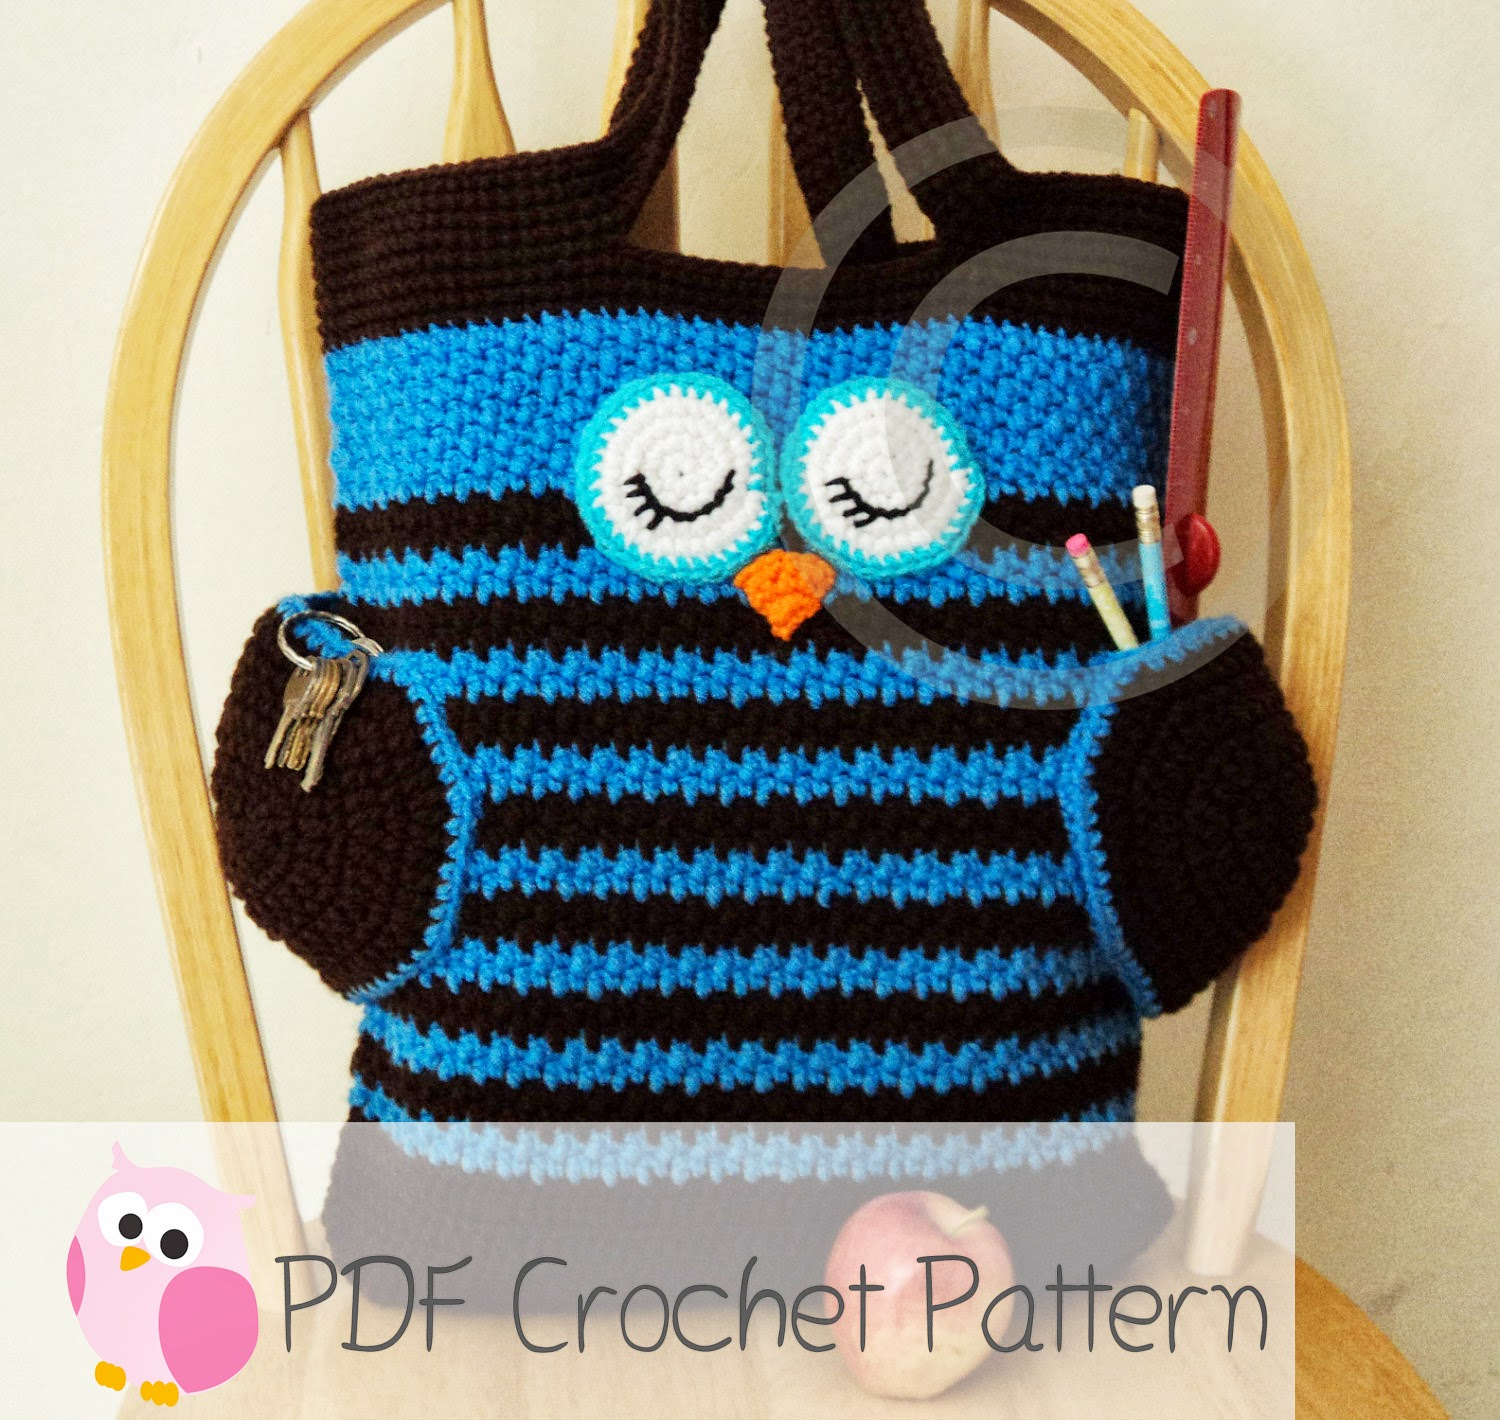 Crochet Patterns For Tote Bags : Cute Little Crafts: Crochet Pattern:Sleepy Owl Tote Bag